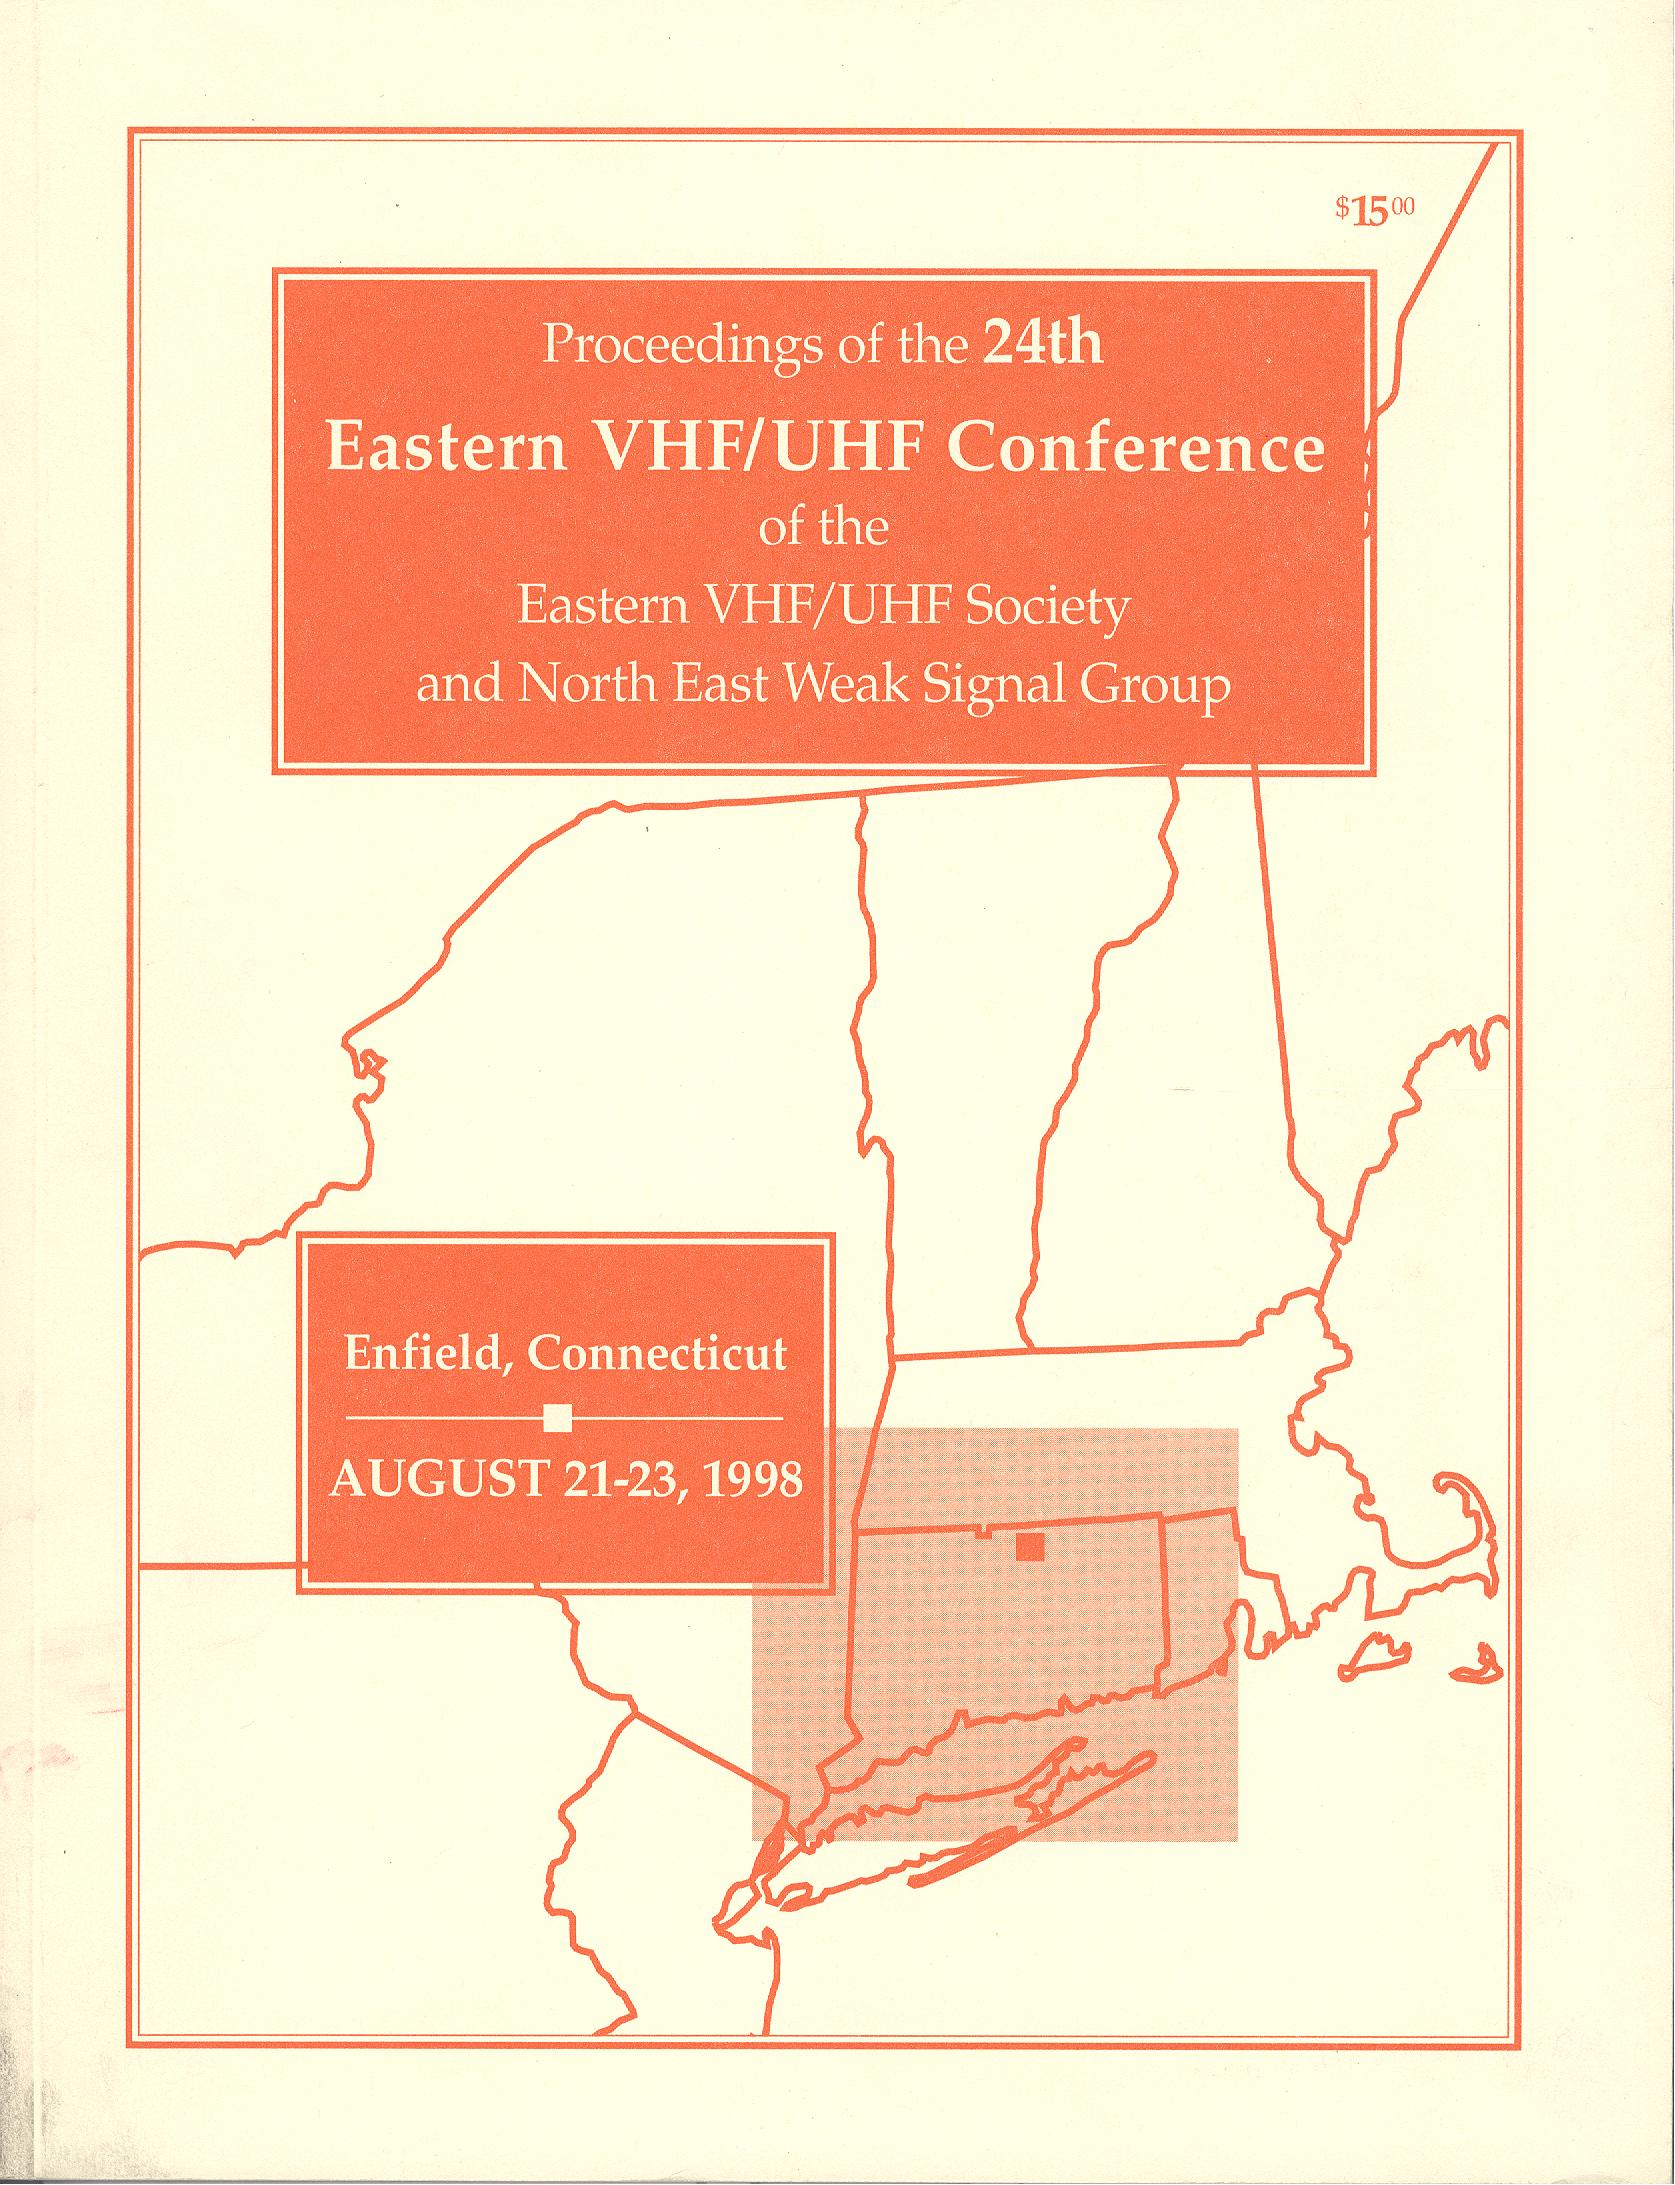 Proceedings of the 24th Eastern VHF/UHF Conference of the Eastern VHF/UHF Society and North East Weak Signal Group 1998